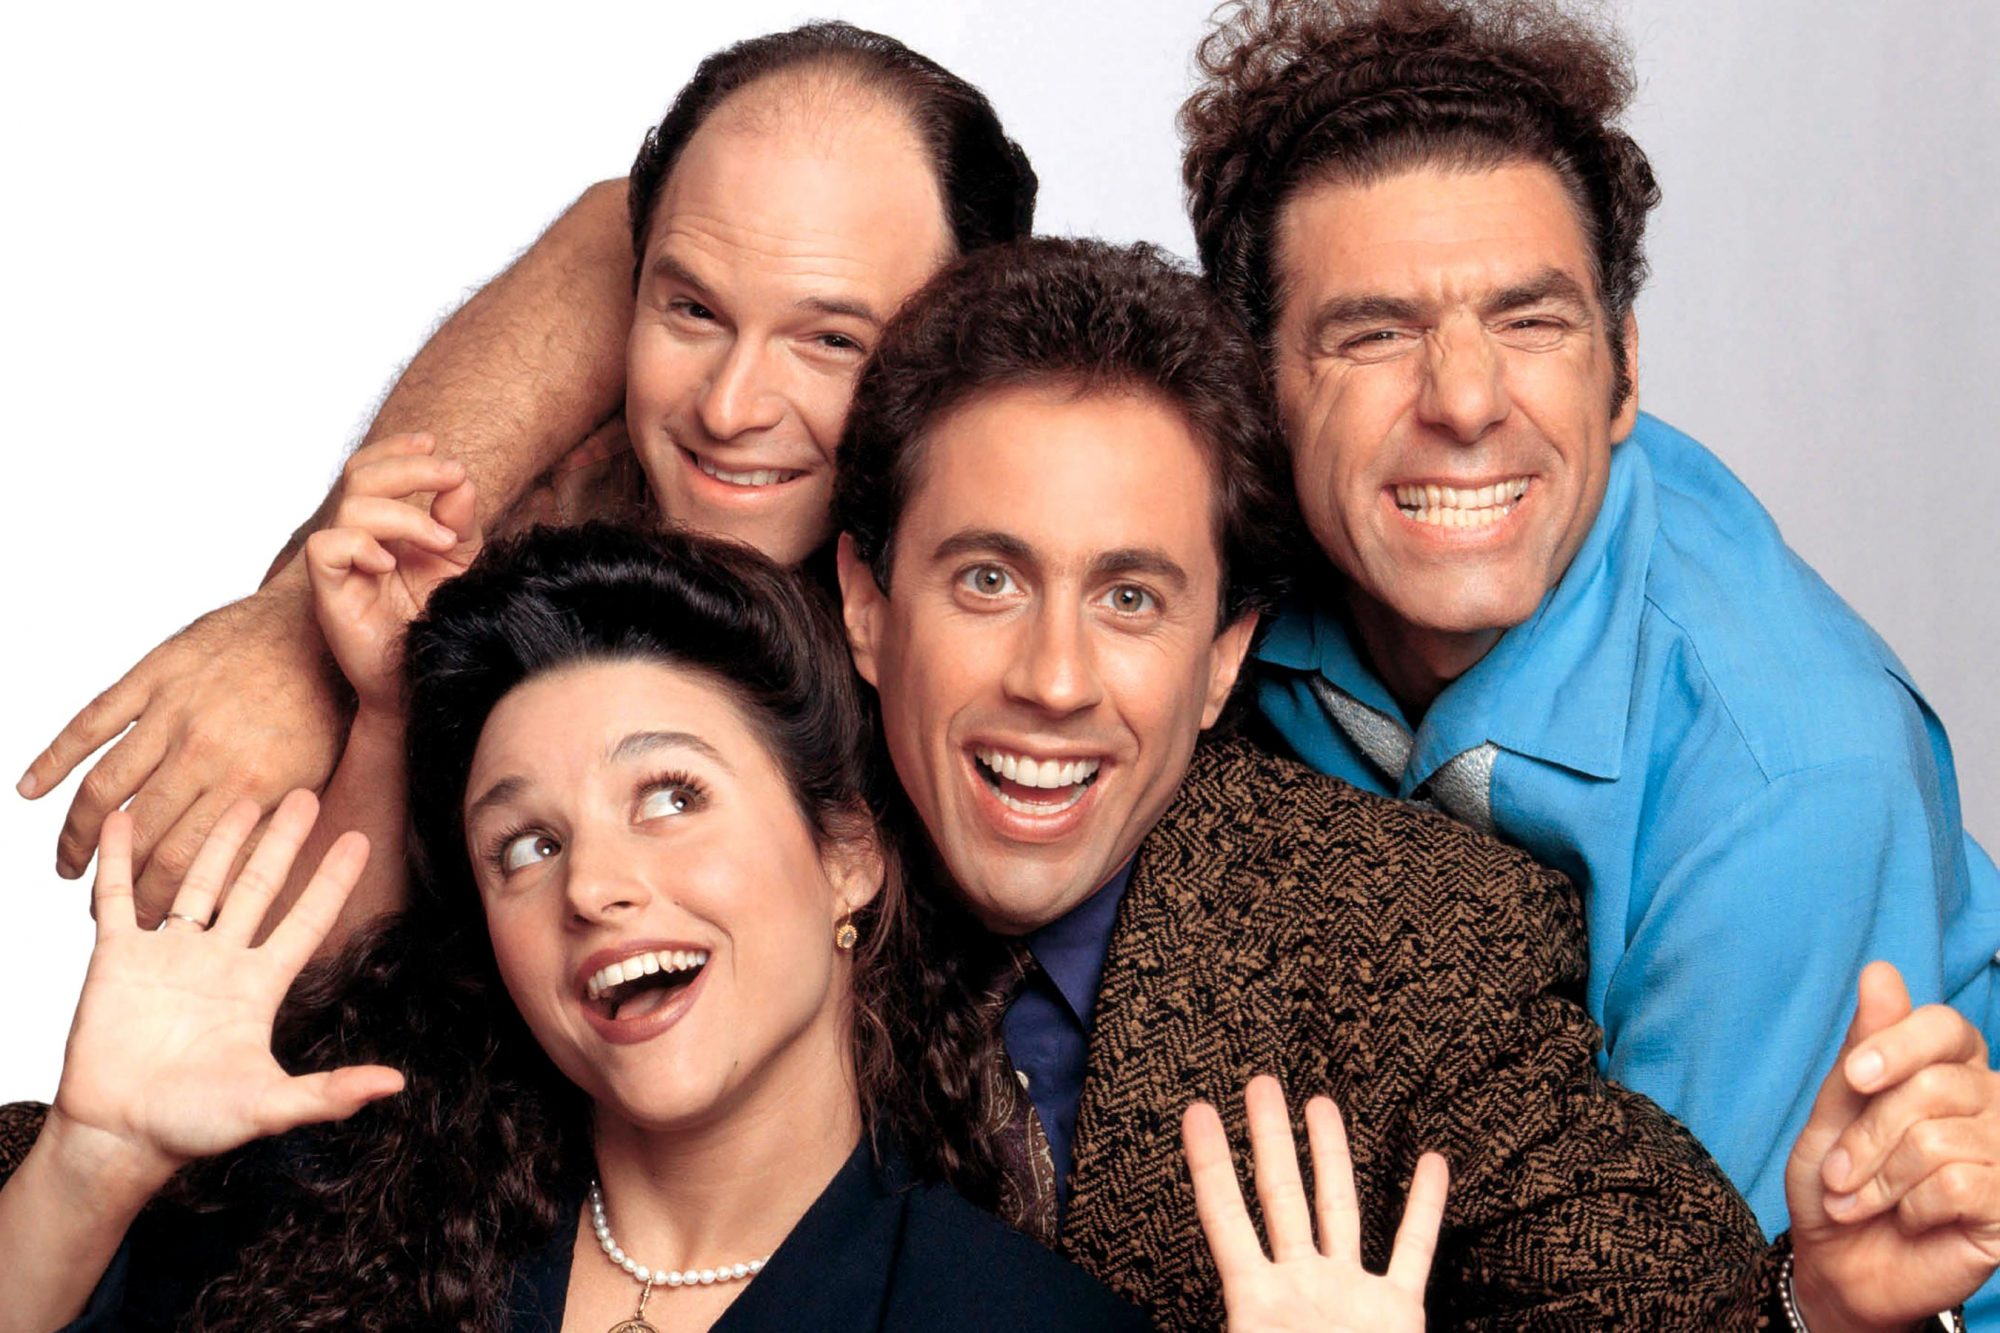 SEINFELD, Jason Alexander, Julia Louis-Dreyfus, Jerry Seinfeld, Michael Richards. Season 7. 1990 - 1